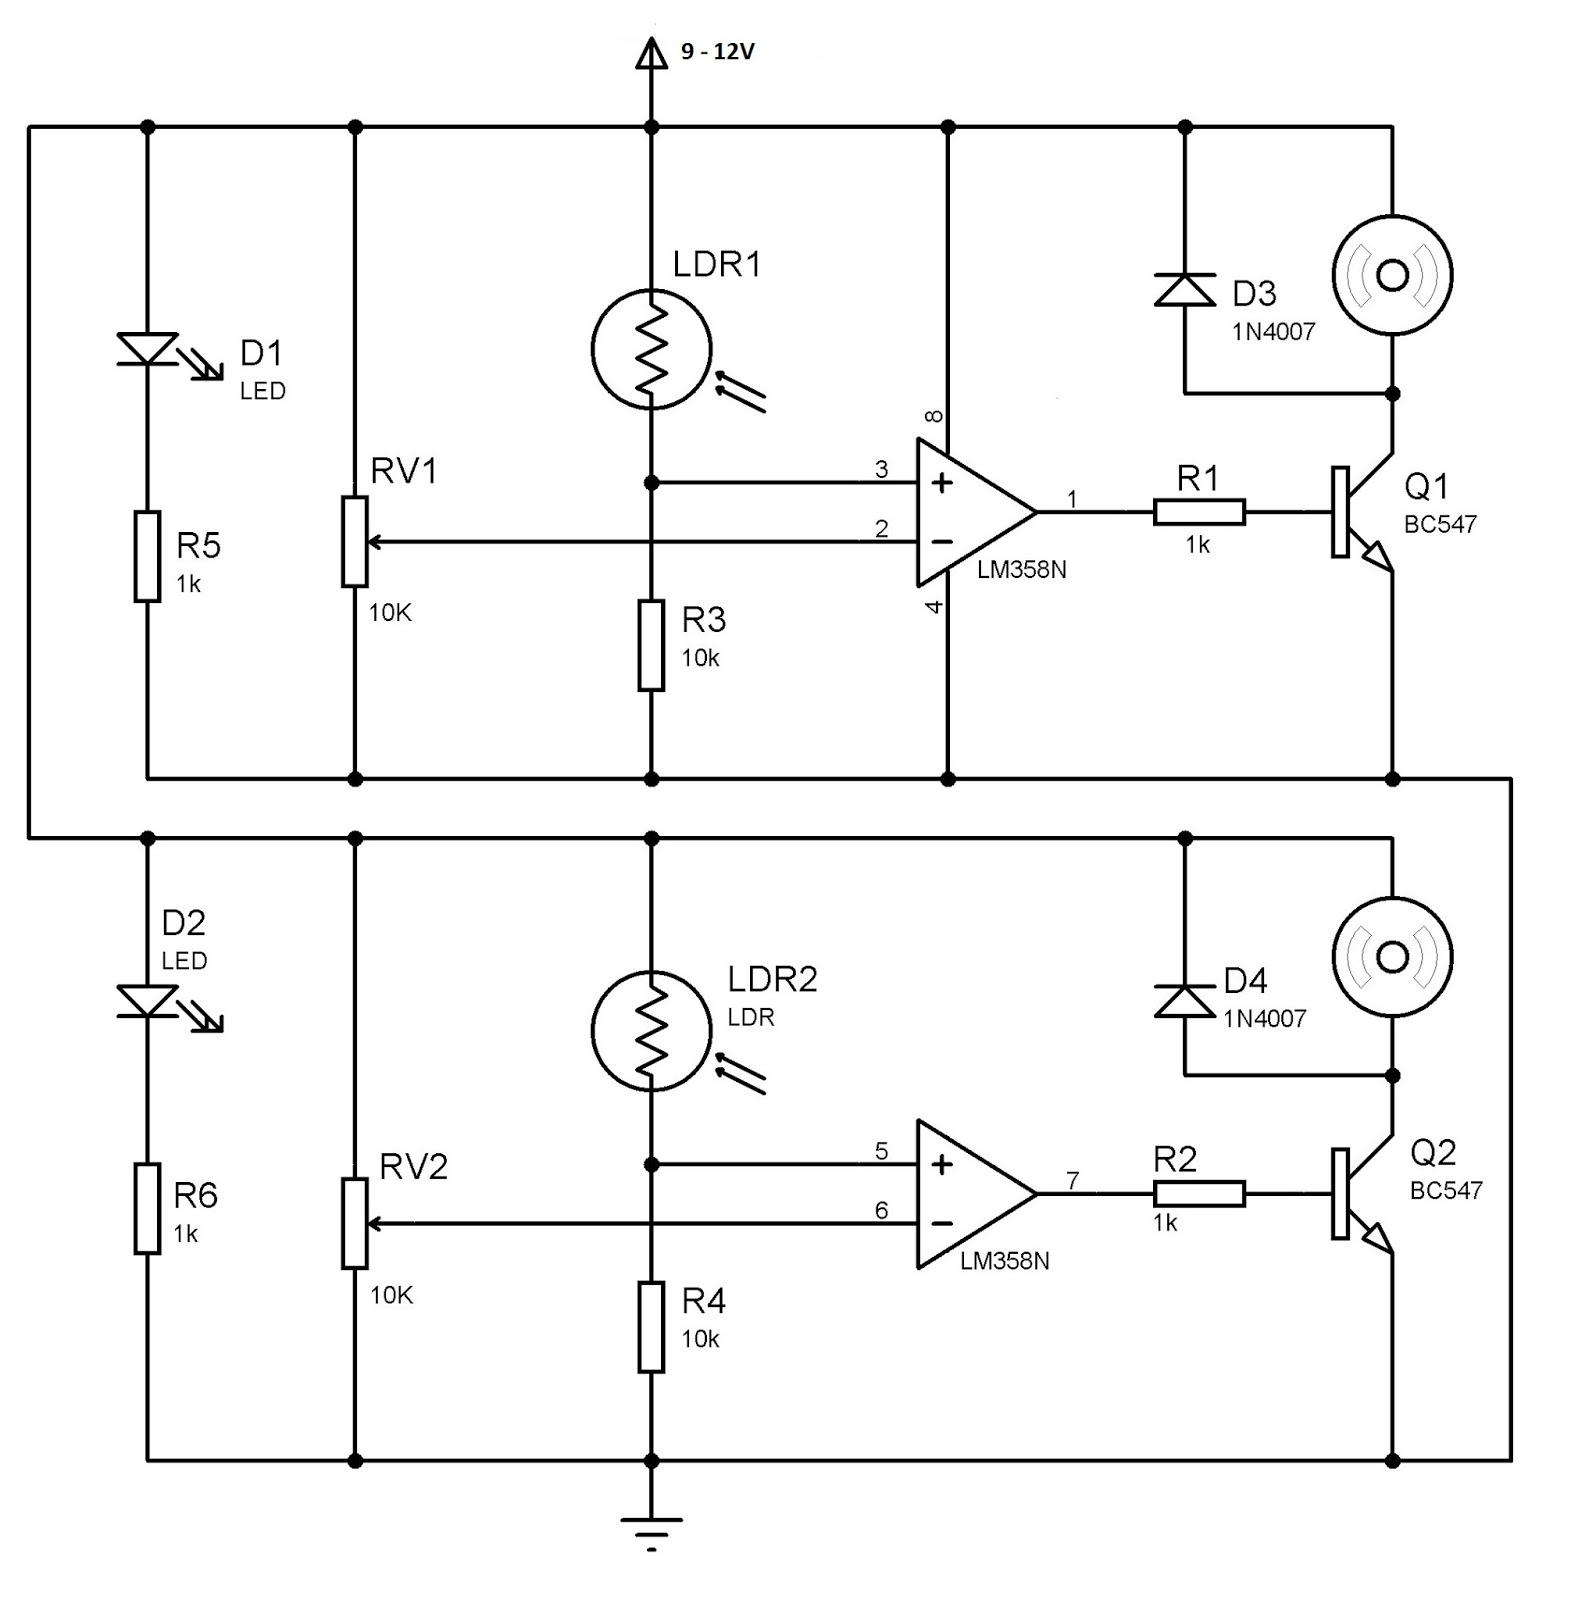 Hobby In Electronics Line Follower Robot Without Microcontroller Op Amp Comparator Circuits Outputs Of The Comparators Are Given To Transistors Which Wired As Switch Drive Motors Diodes D3 And D4 Provided Cancel